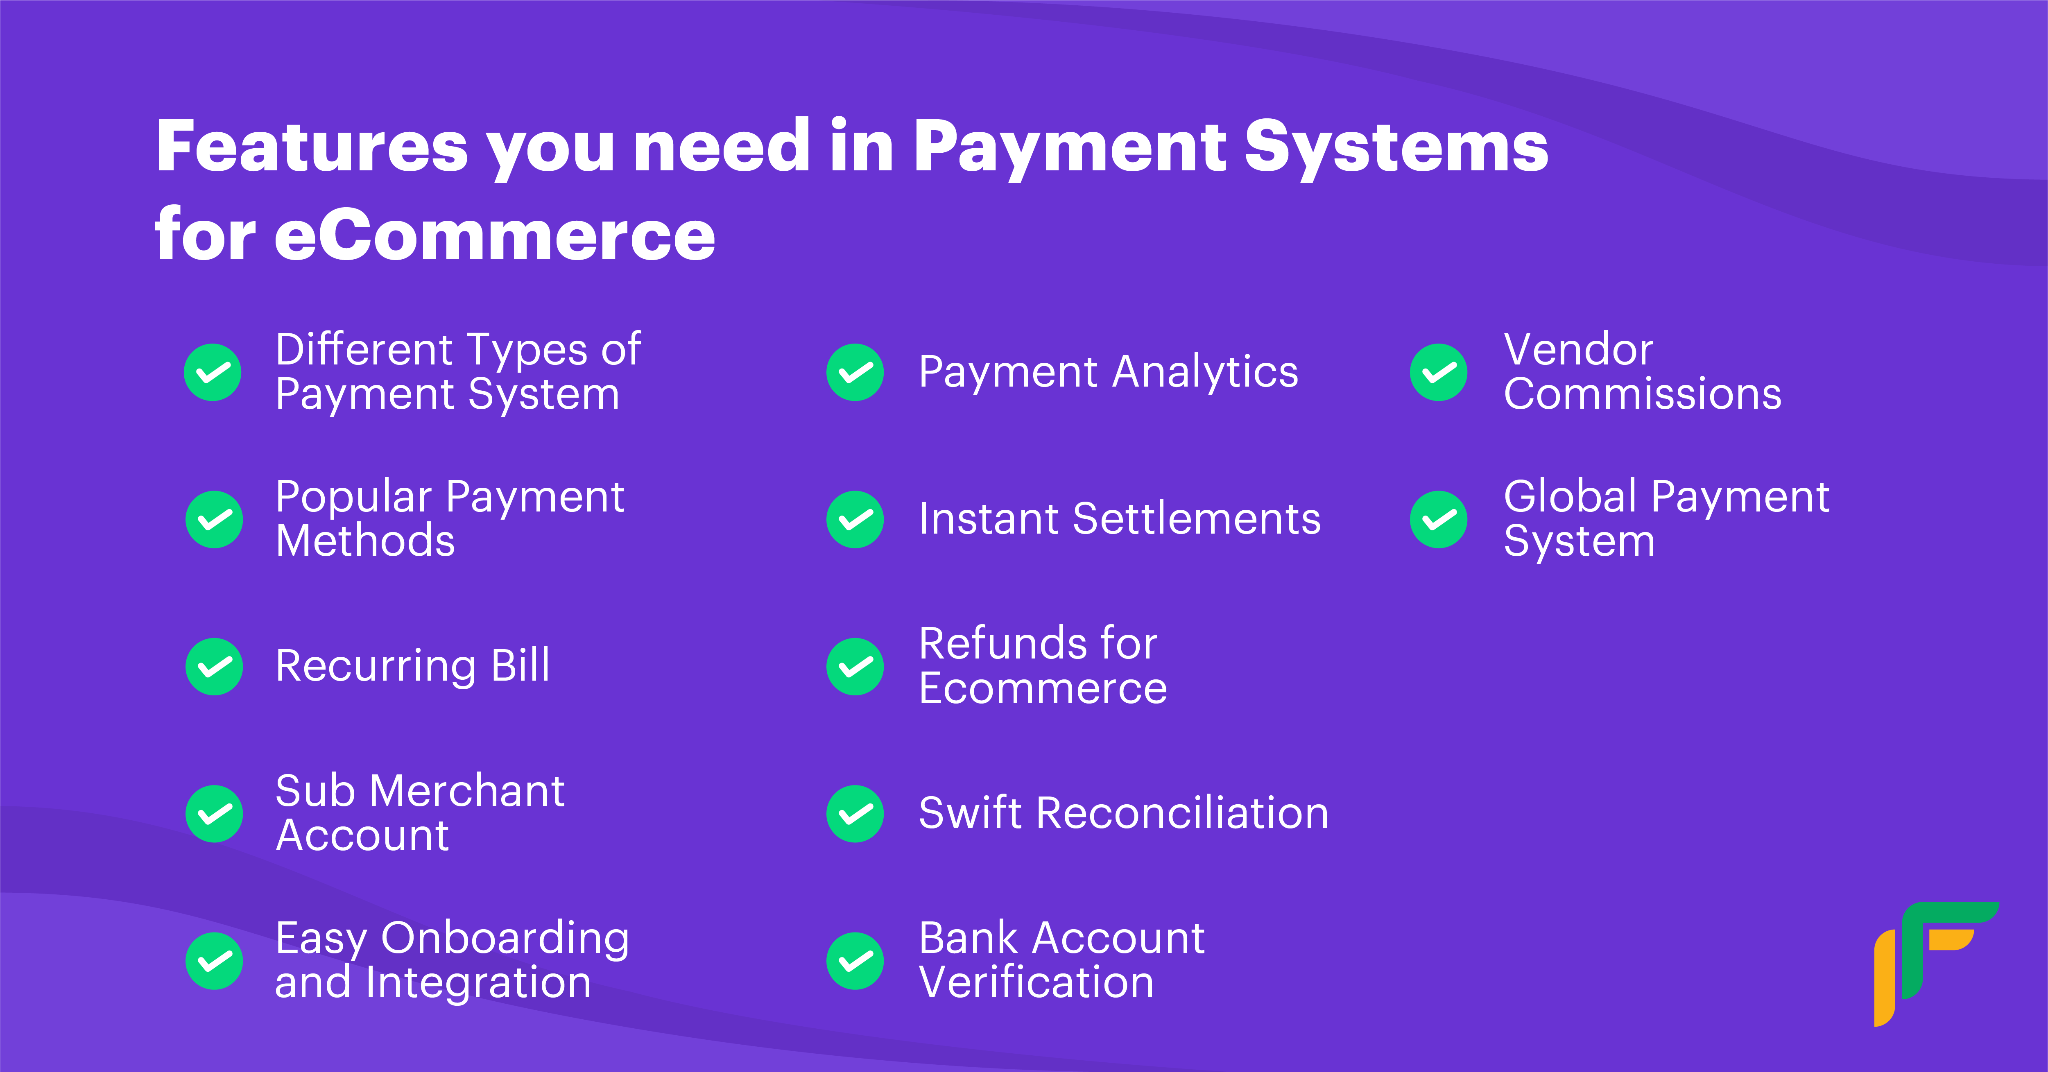 payments systems for eCommerce features